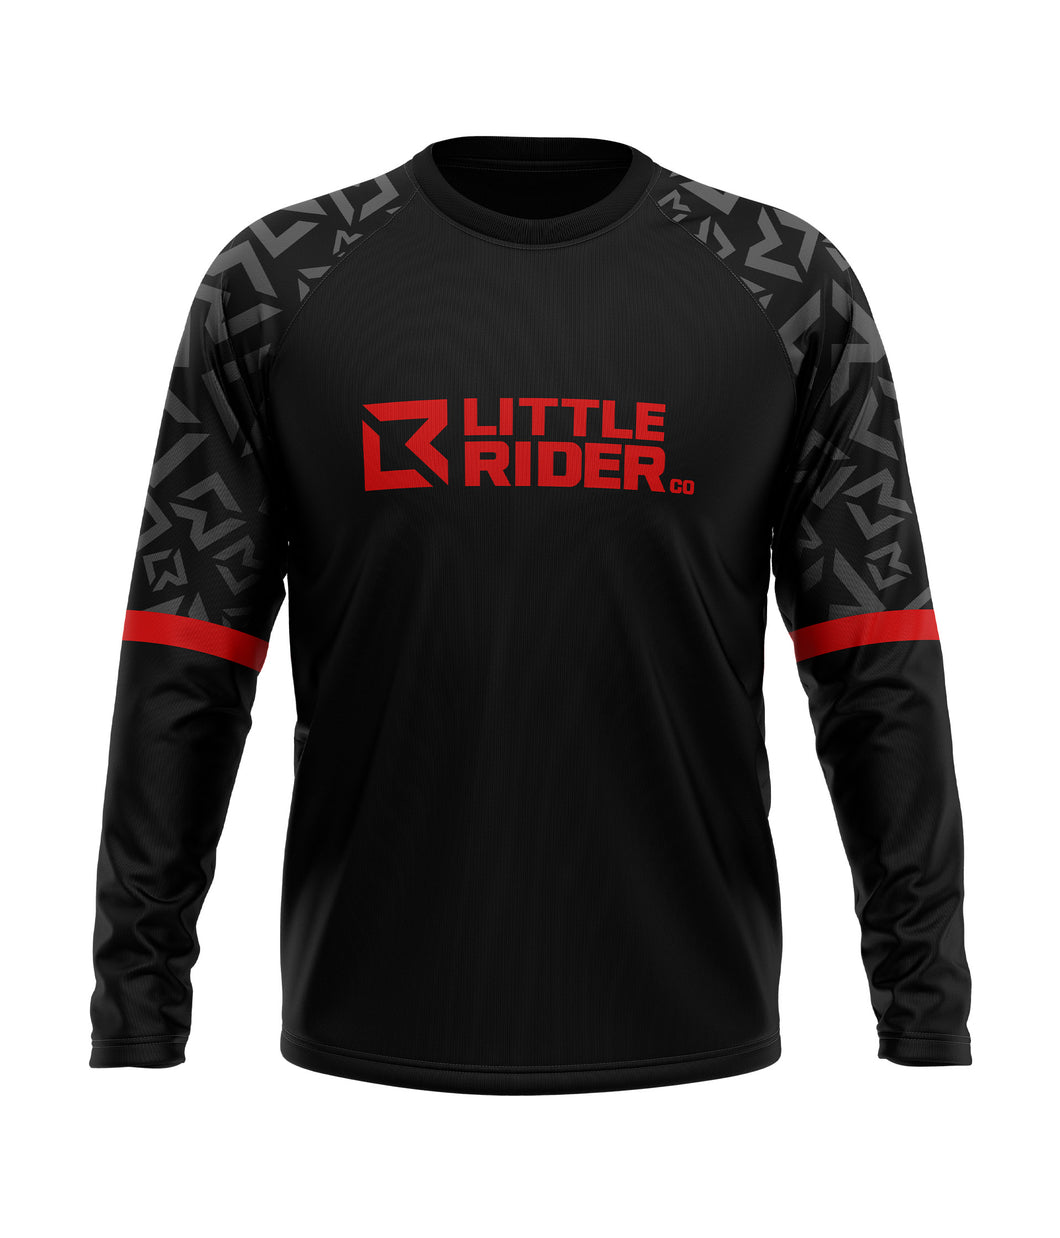 Little Rider Co 'SEND IT' Jersey - Dark DEVIL RED (END OF LINE) - RRP £25